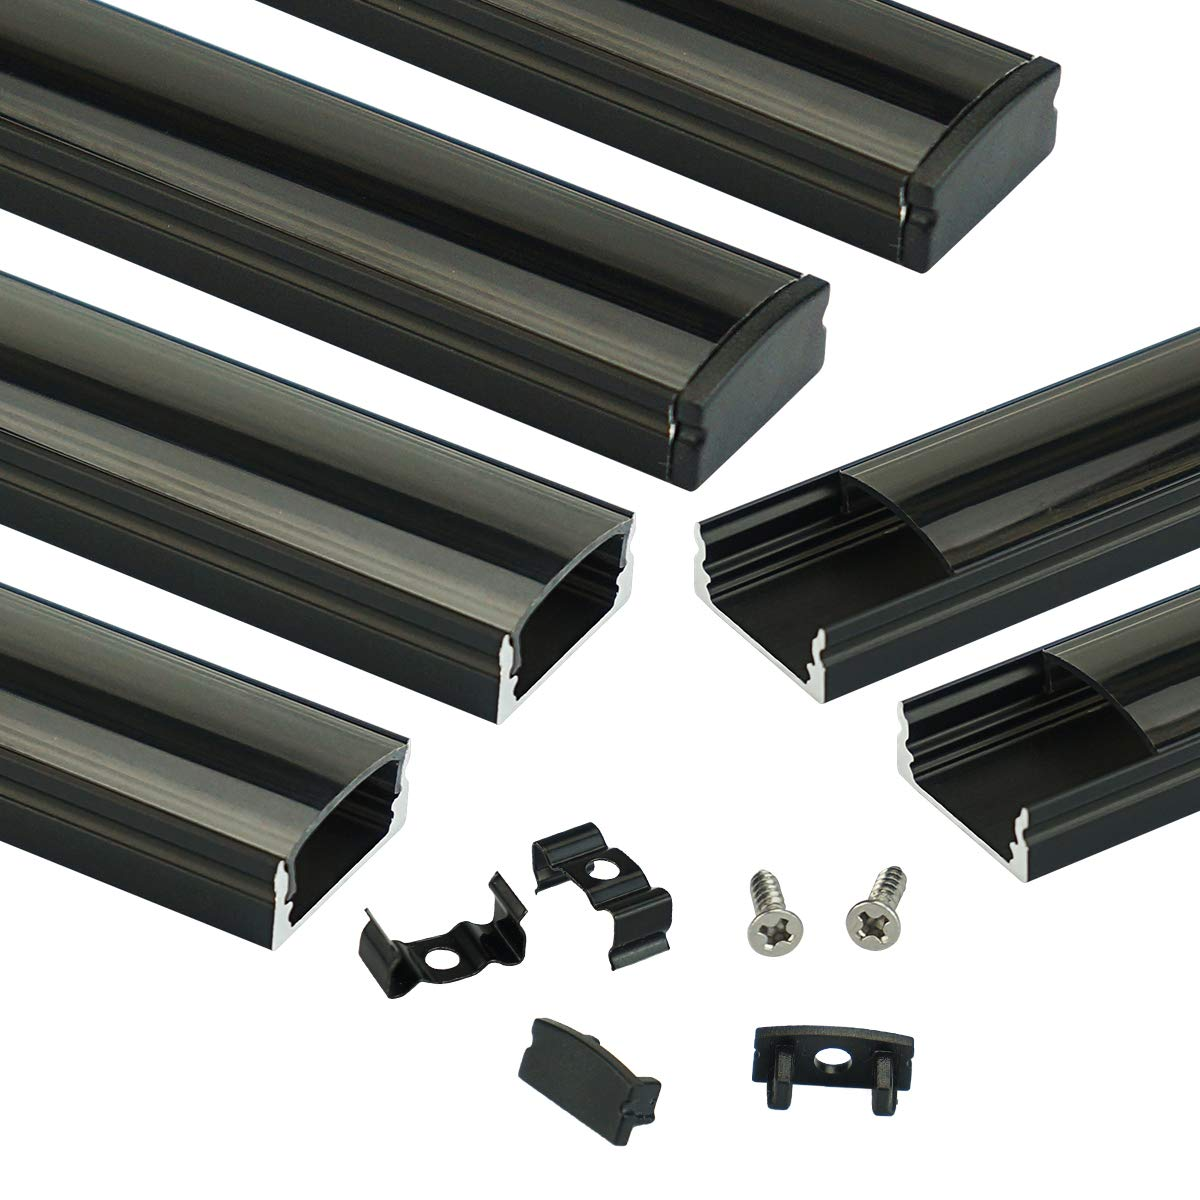 Muzata Black LED Channel System with Crystal Smoke Black Transparent Diffuser Clear Cover Lens,Aluminum Extrusion Track Housing Profile for Strip Tape Light with Video,6Pack 3.3ft/1M U1BB,Series LU1